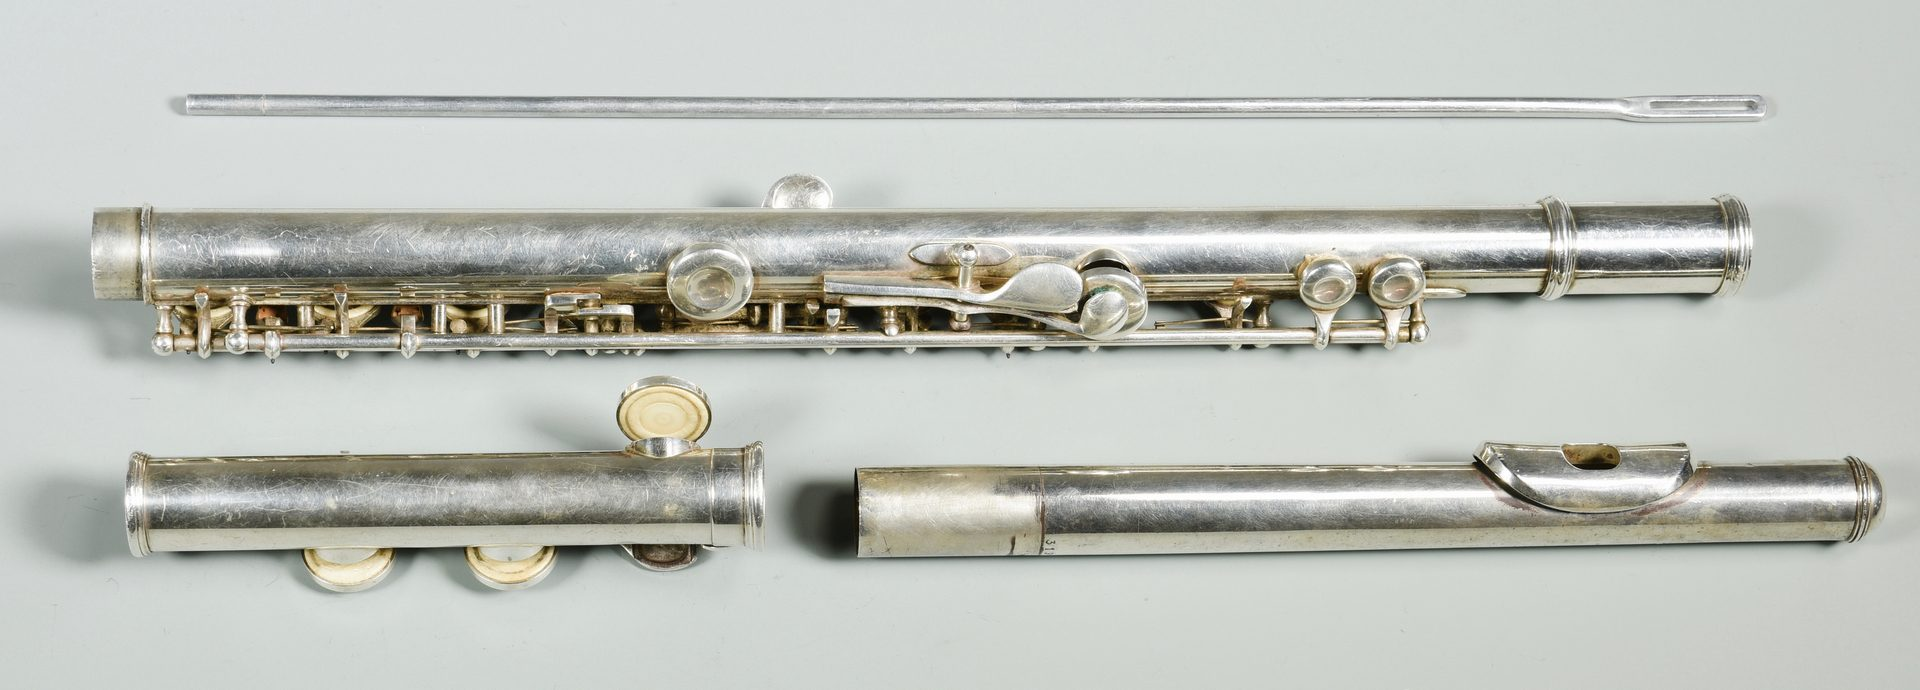 Lot 158: Selmer Company Sterling Flute w/ Case